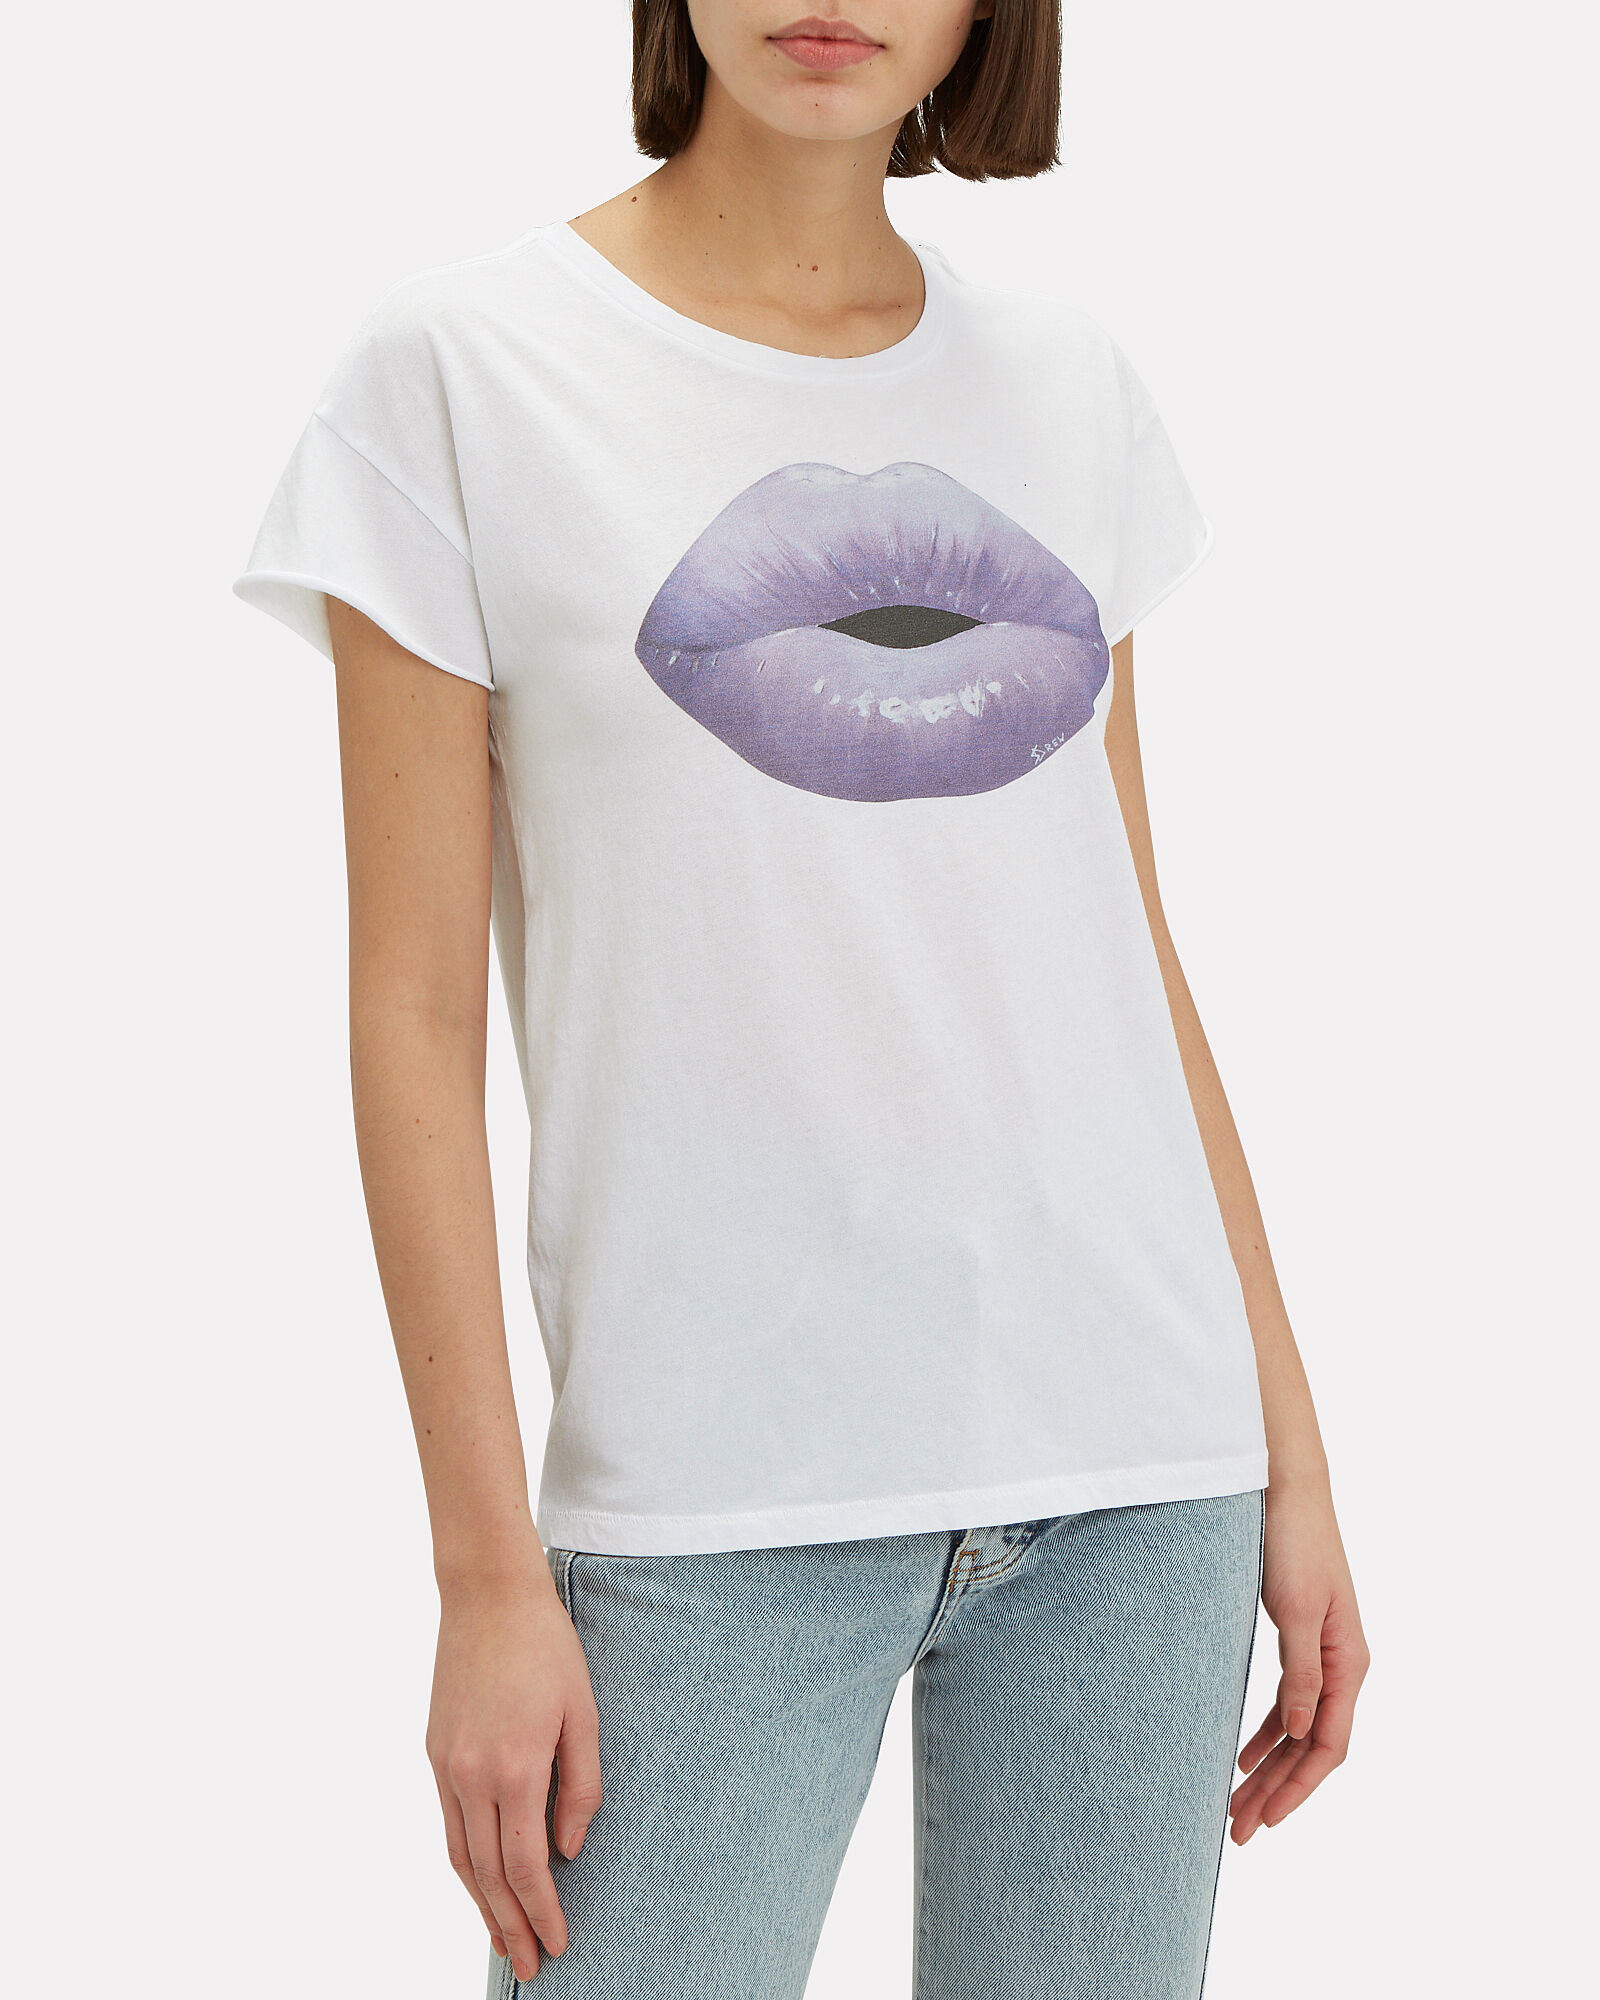 Kiss Me T-Shirt, WHITE, hi-res